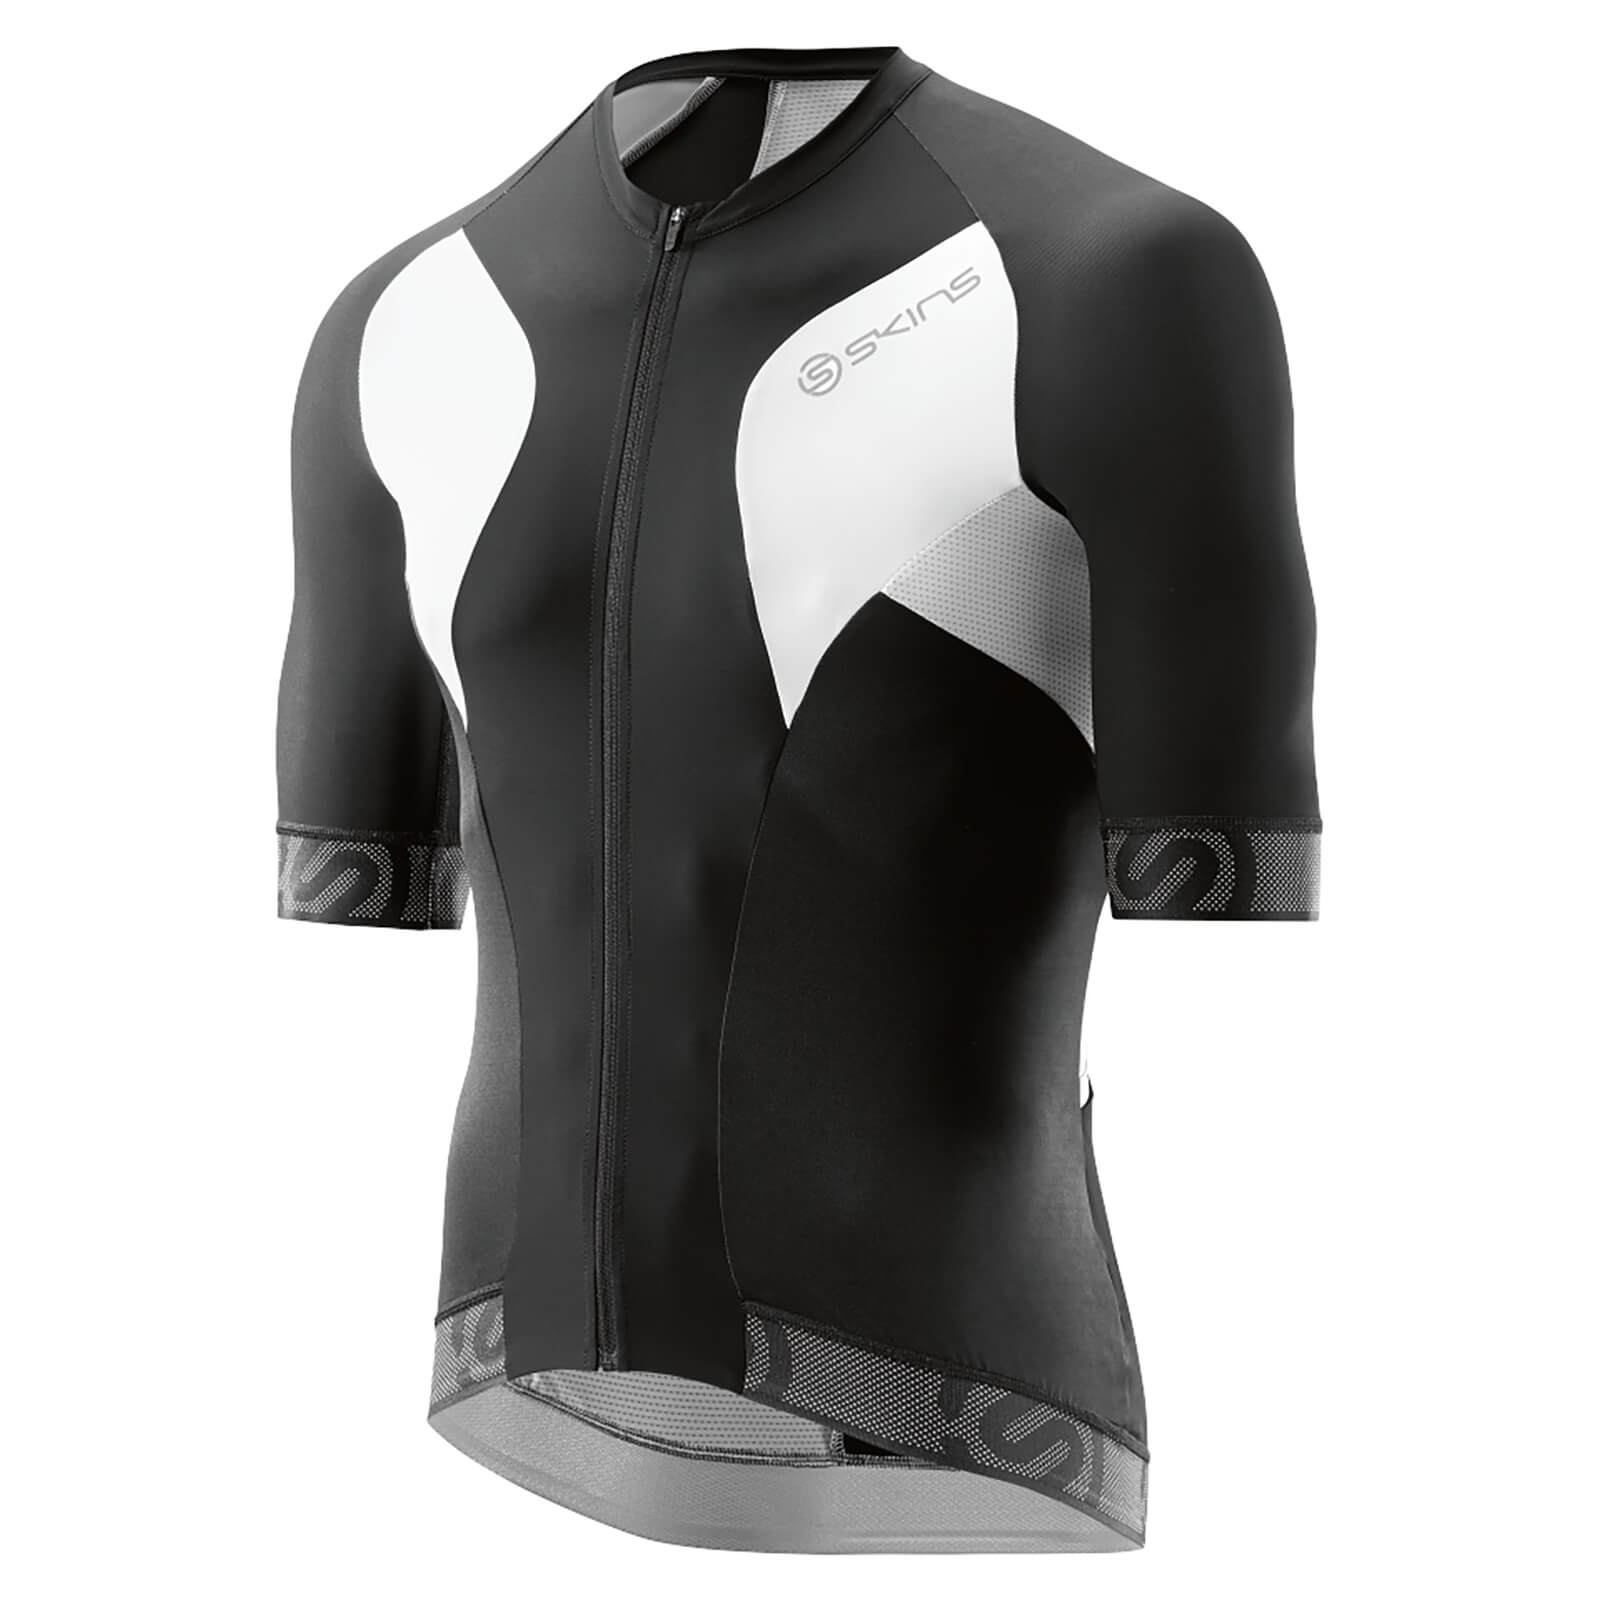 Skins Cycle Men s Tremola Due Short Sleeve Jersey - Black White ... 26239087a